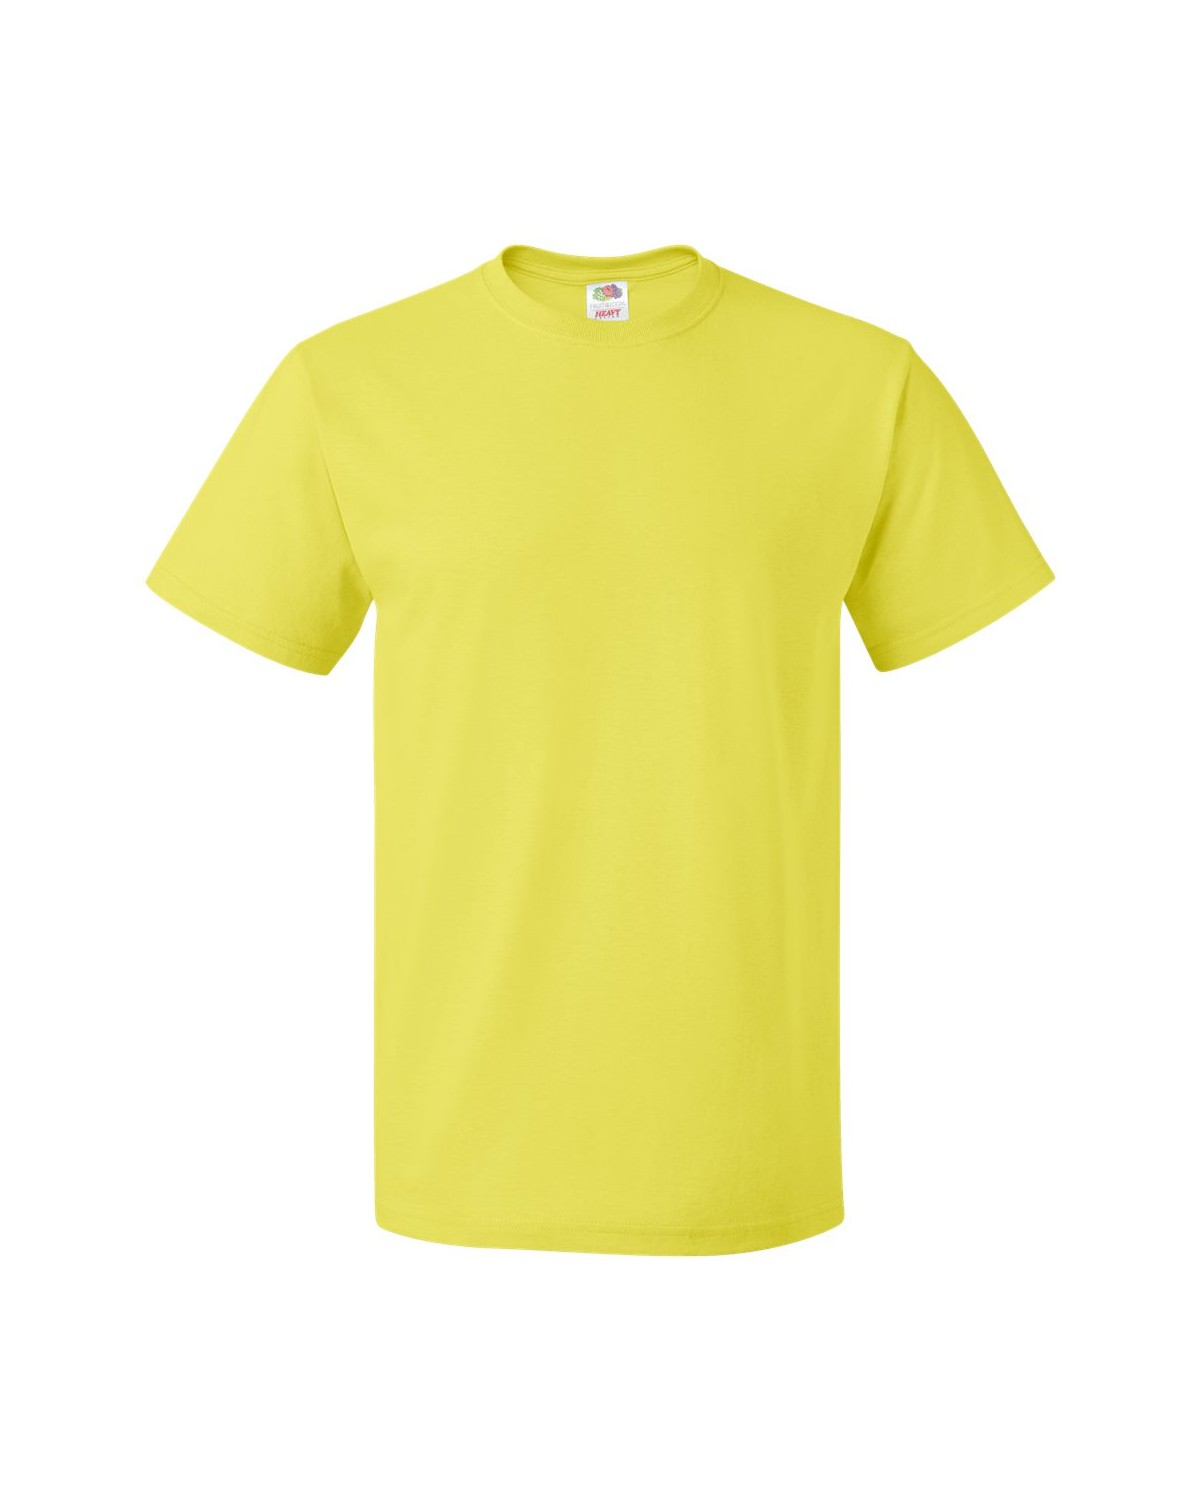 3930R Fruit of the Loom NEON YELLOW